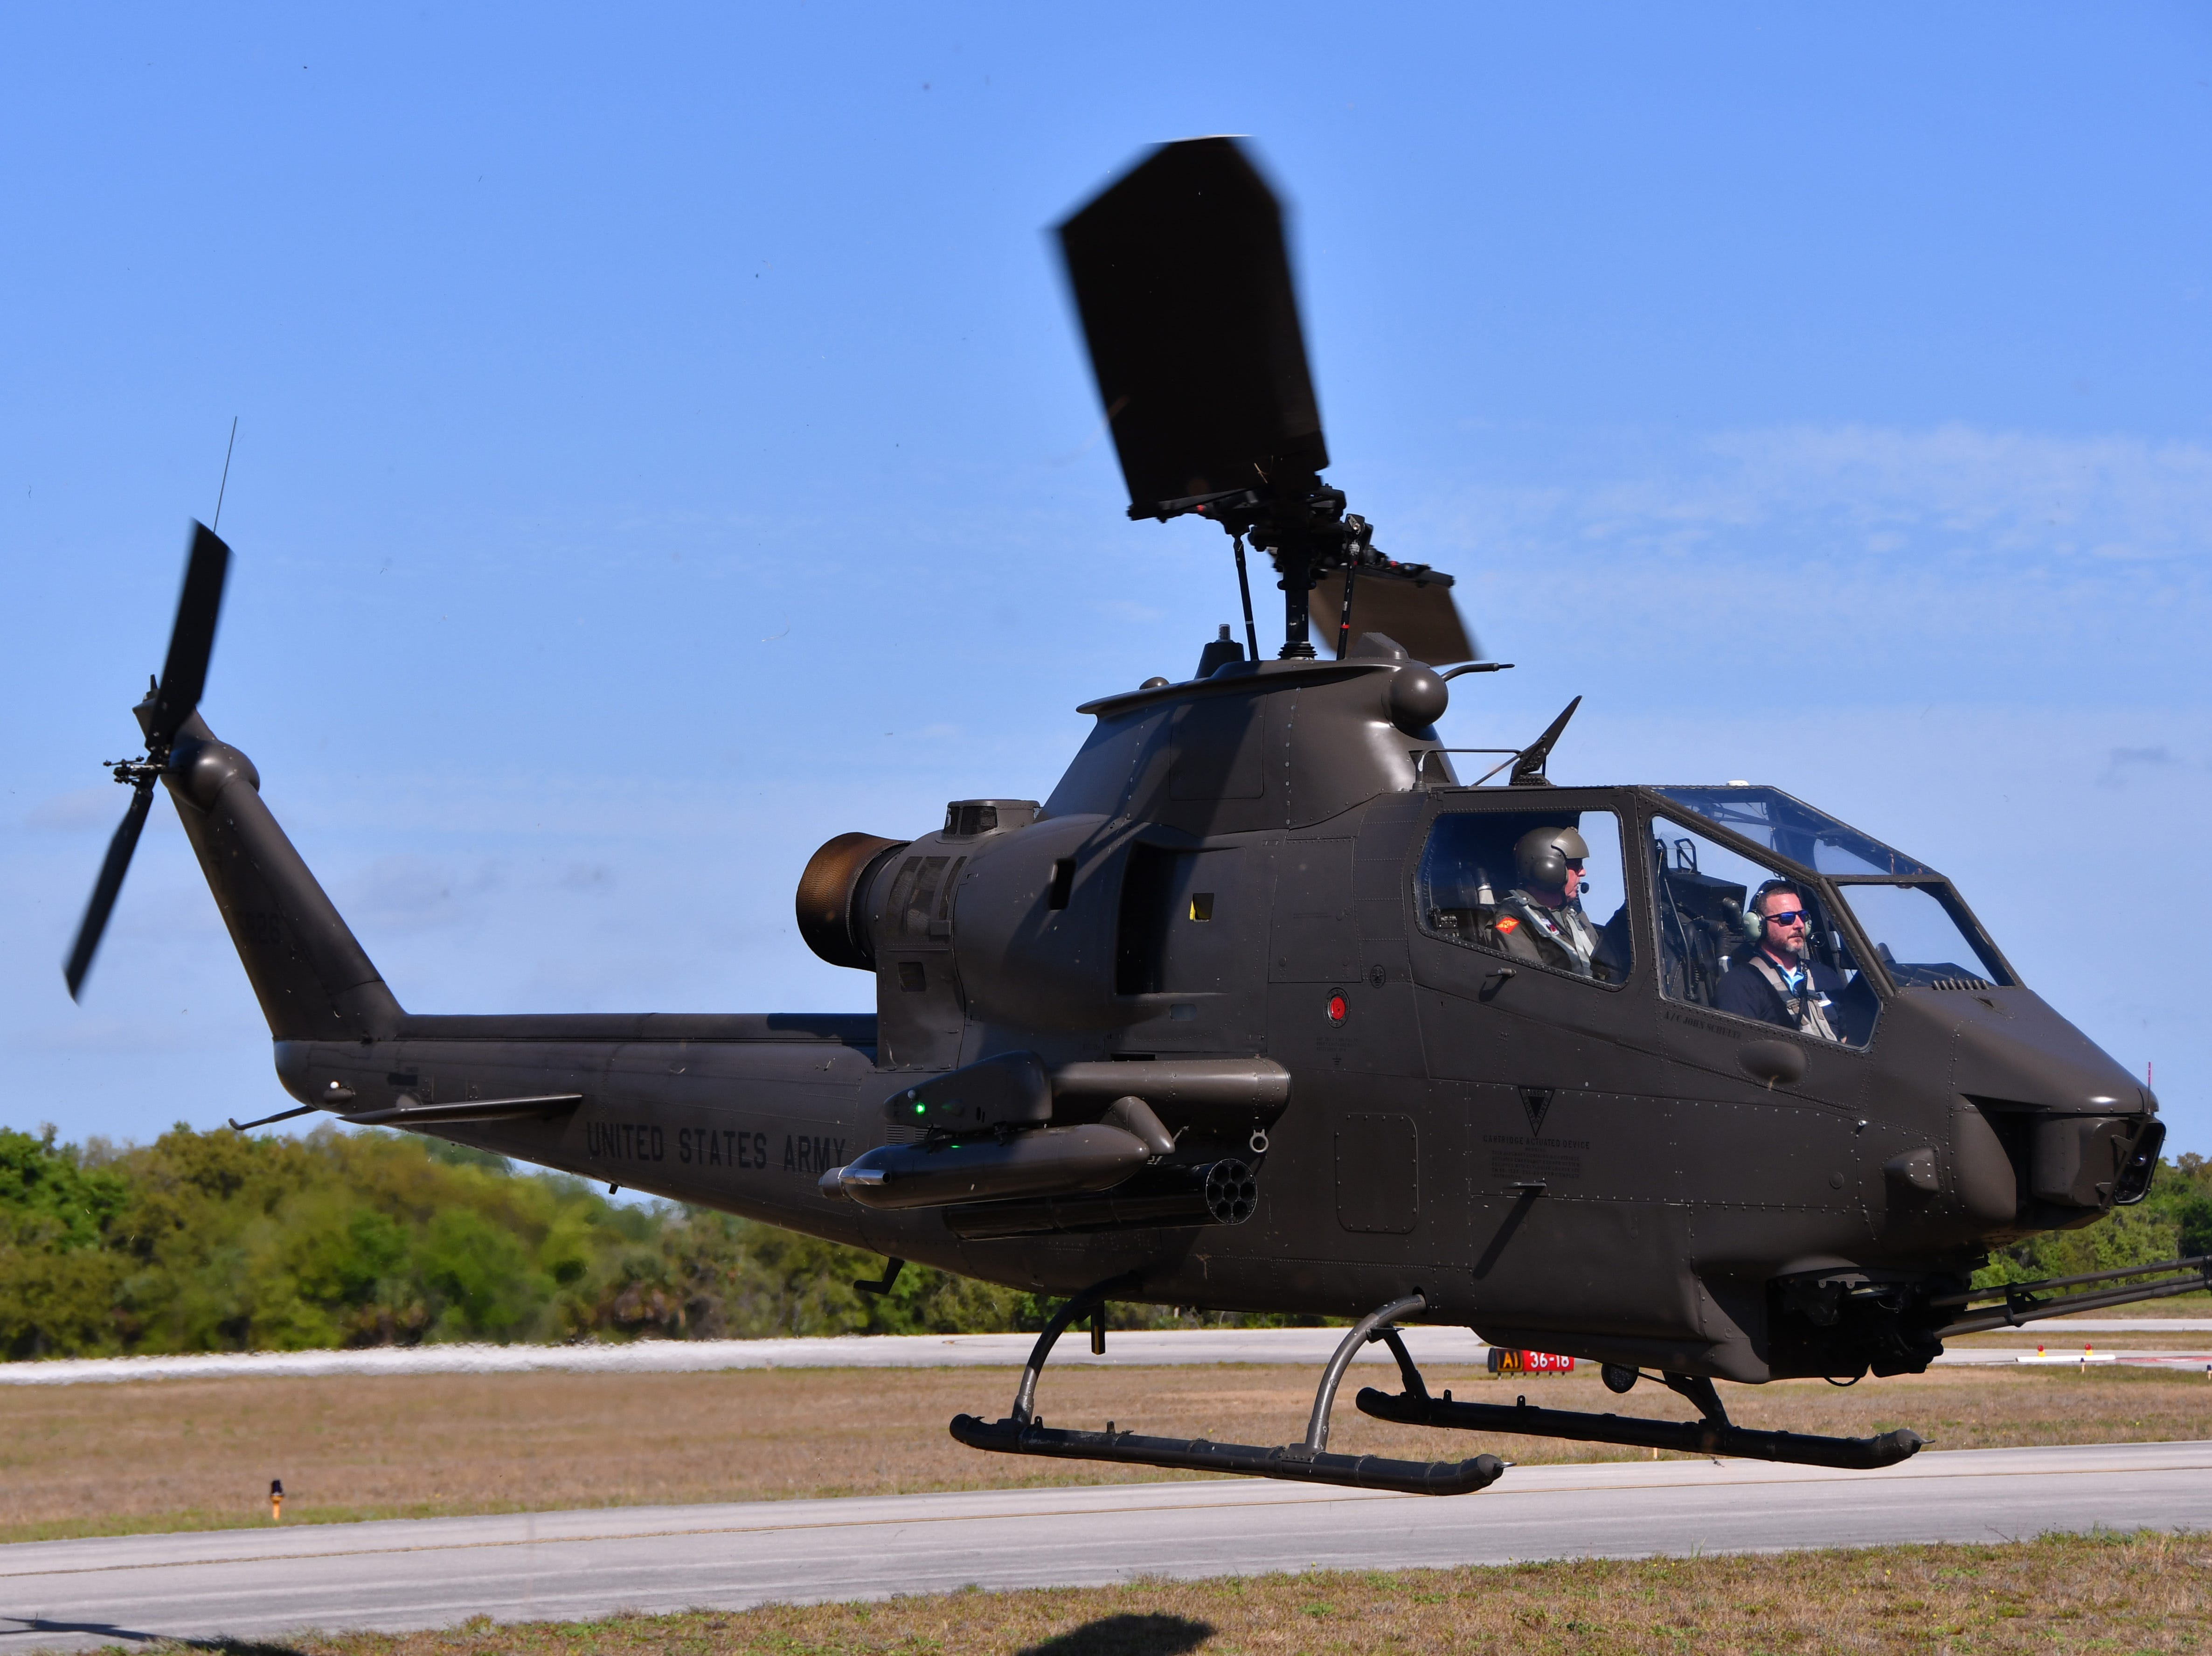 An AH-1 Cobra helicopter comes in for a landing. The 2019 Space Coast Warbird Air Show held their media day Thursday, promoting the Air Show that runs Friday, Saturday and Sunday at Space Coast Regional Airport in Titusville, with a Friday afternoon and evening show with fireworks, and shows Saturday and Sunday afternoon.